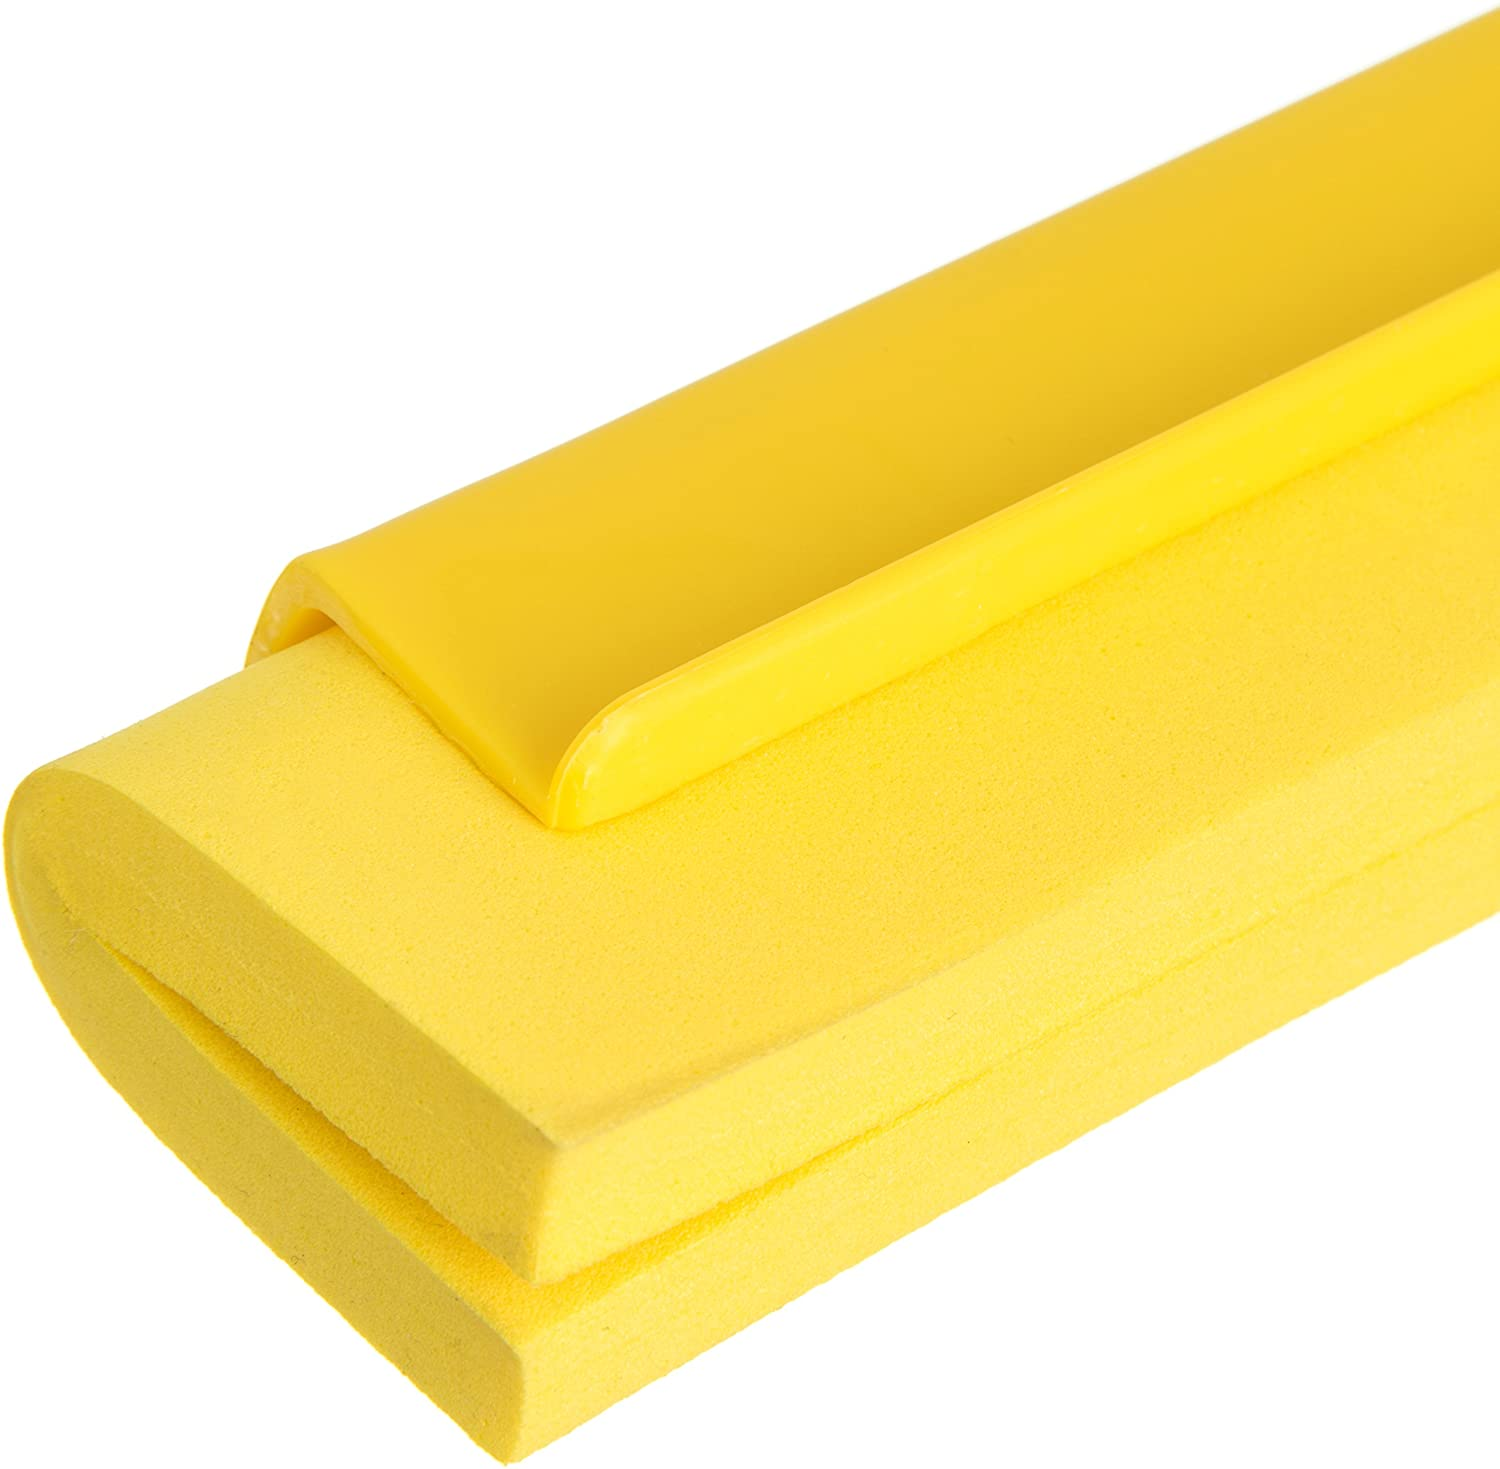 Synthetic Rubber//Polypropylene Red 24 Carlisle 24 Eaches Carlisle 4156805 Commercial Double Foam Squeegee